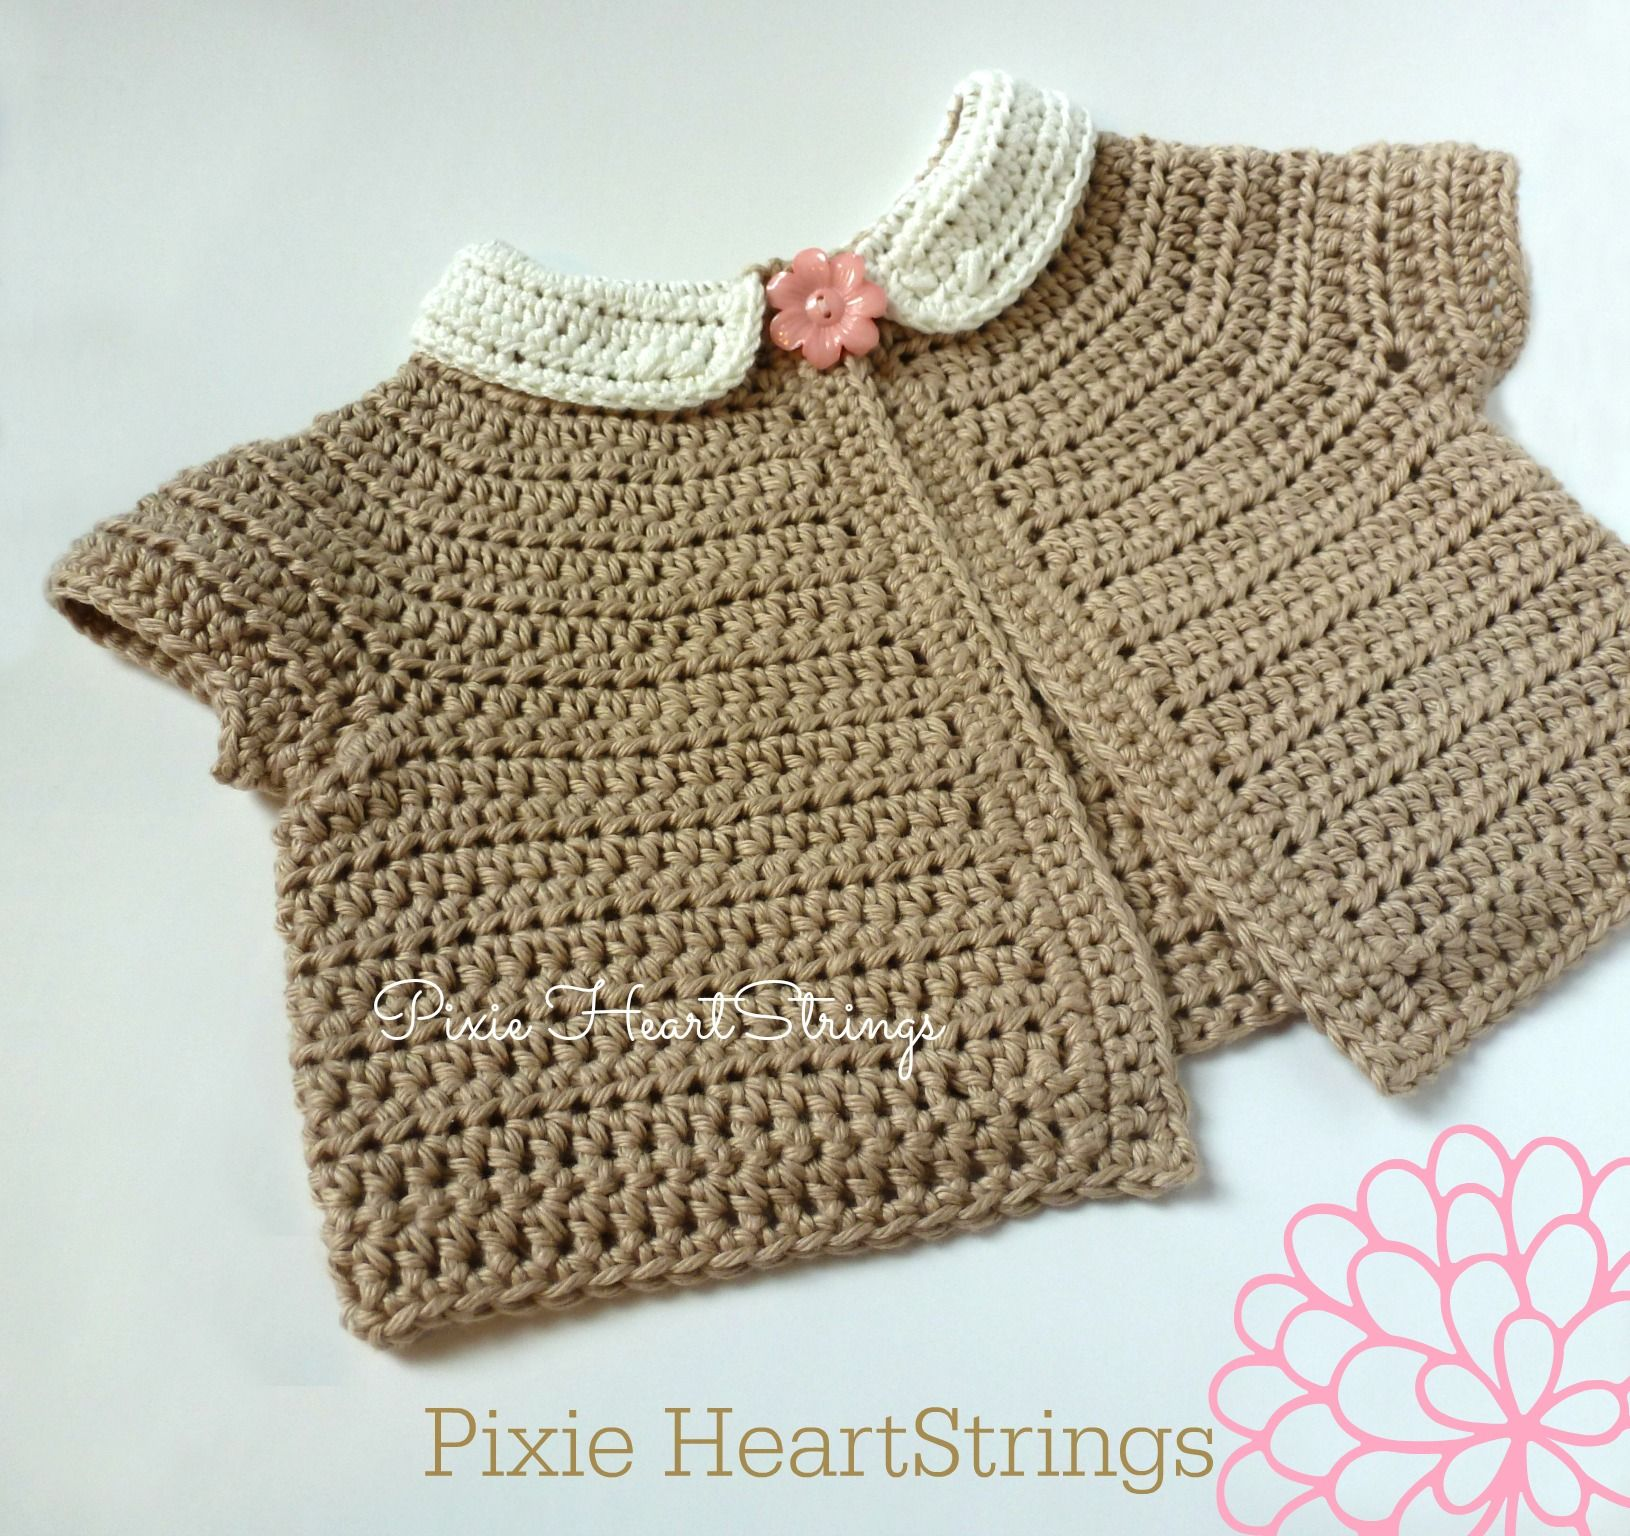 Crochet baby sweater with peter pan collar by pixie heartstrings crochet crochet baby sweater with peter pan collar bankloansurffo Image collections